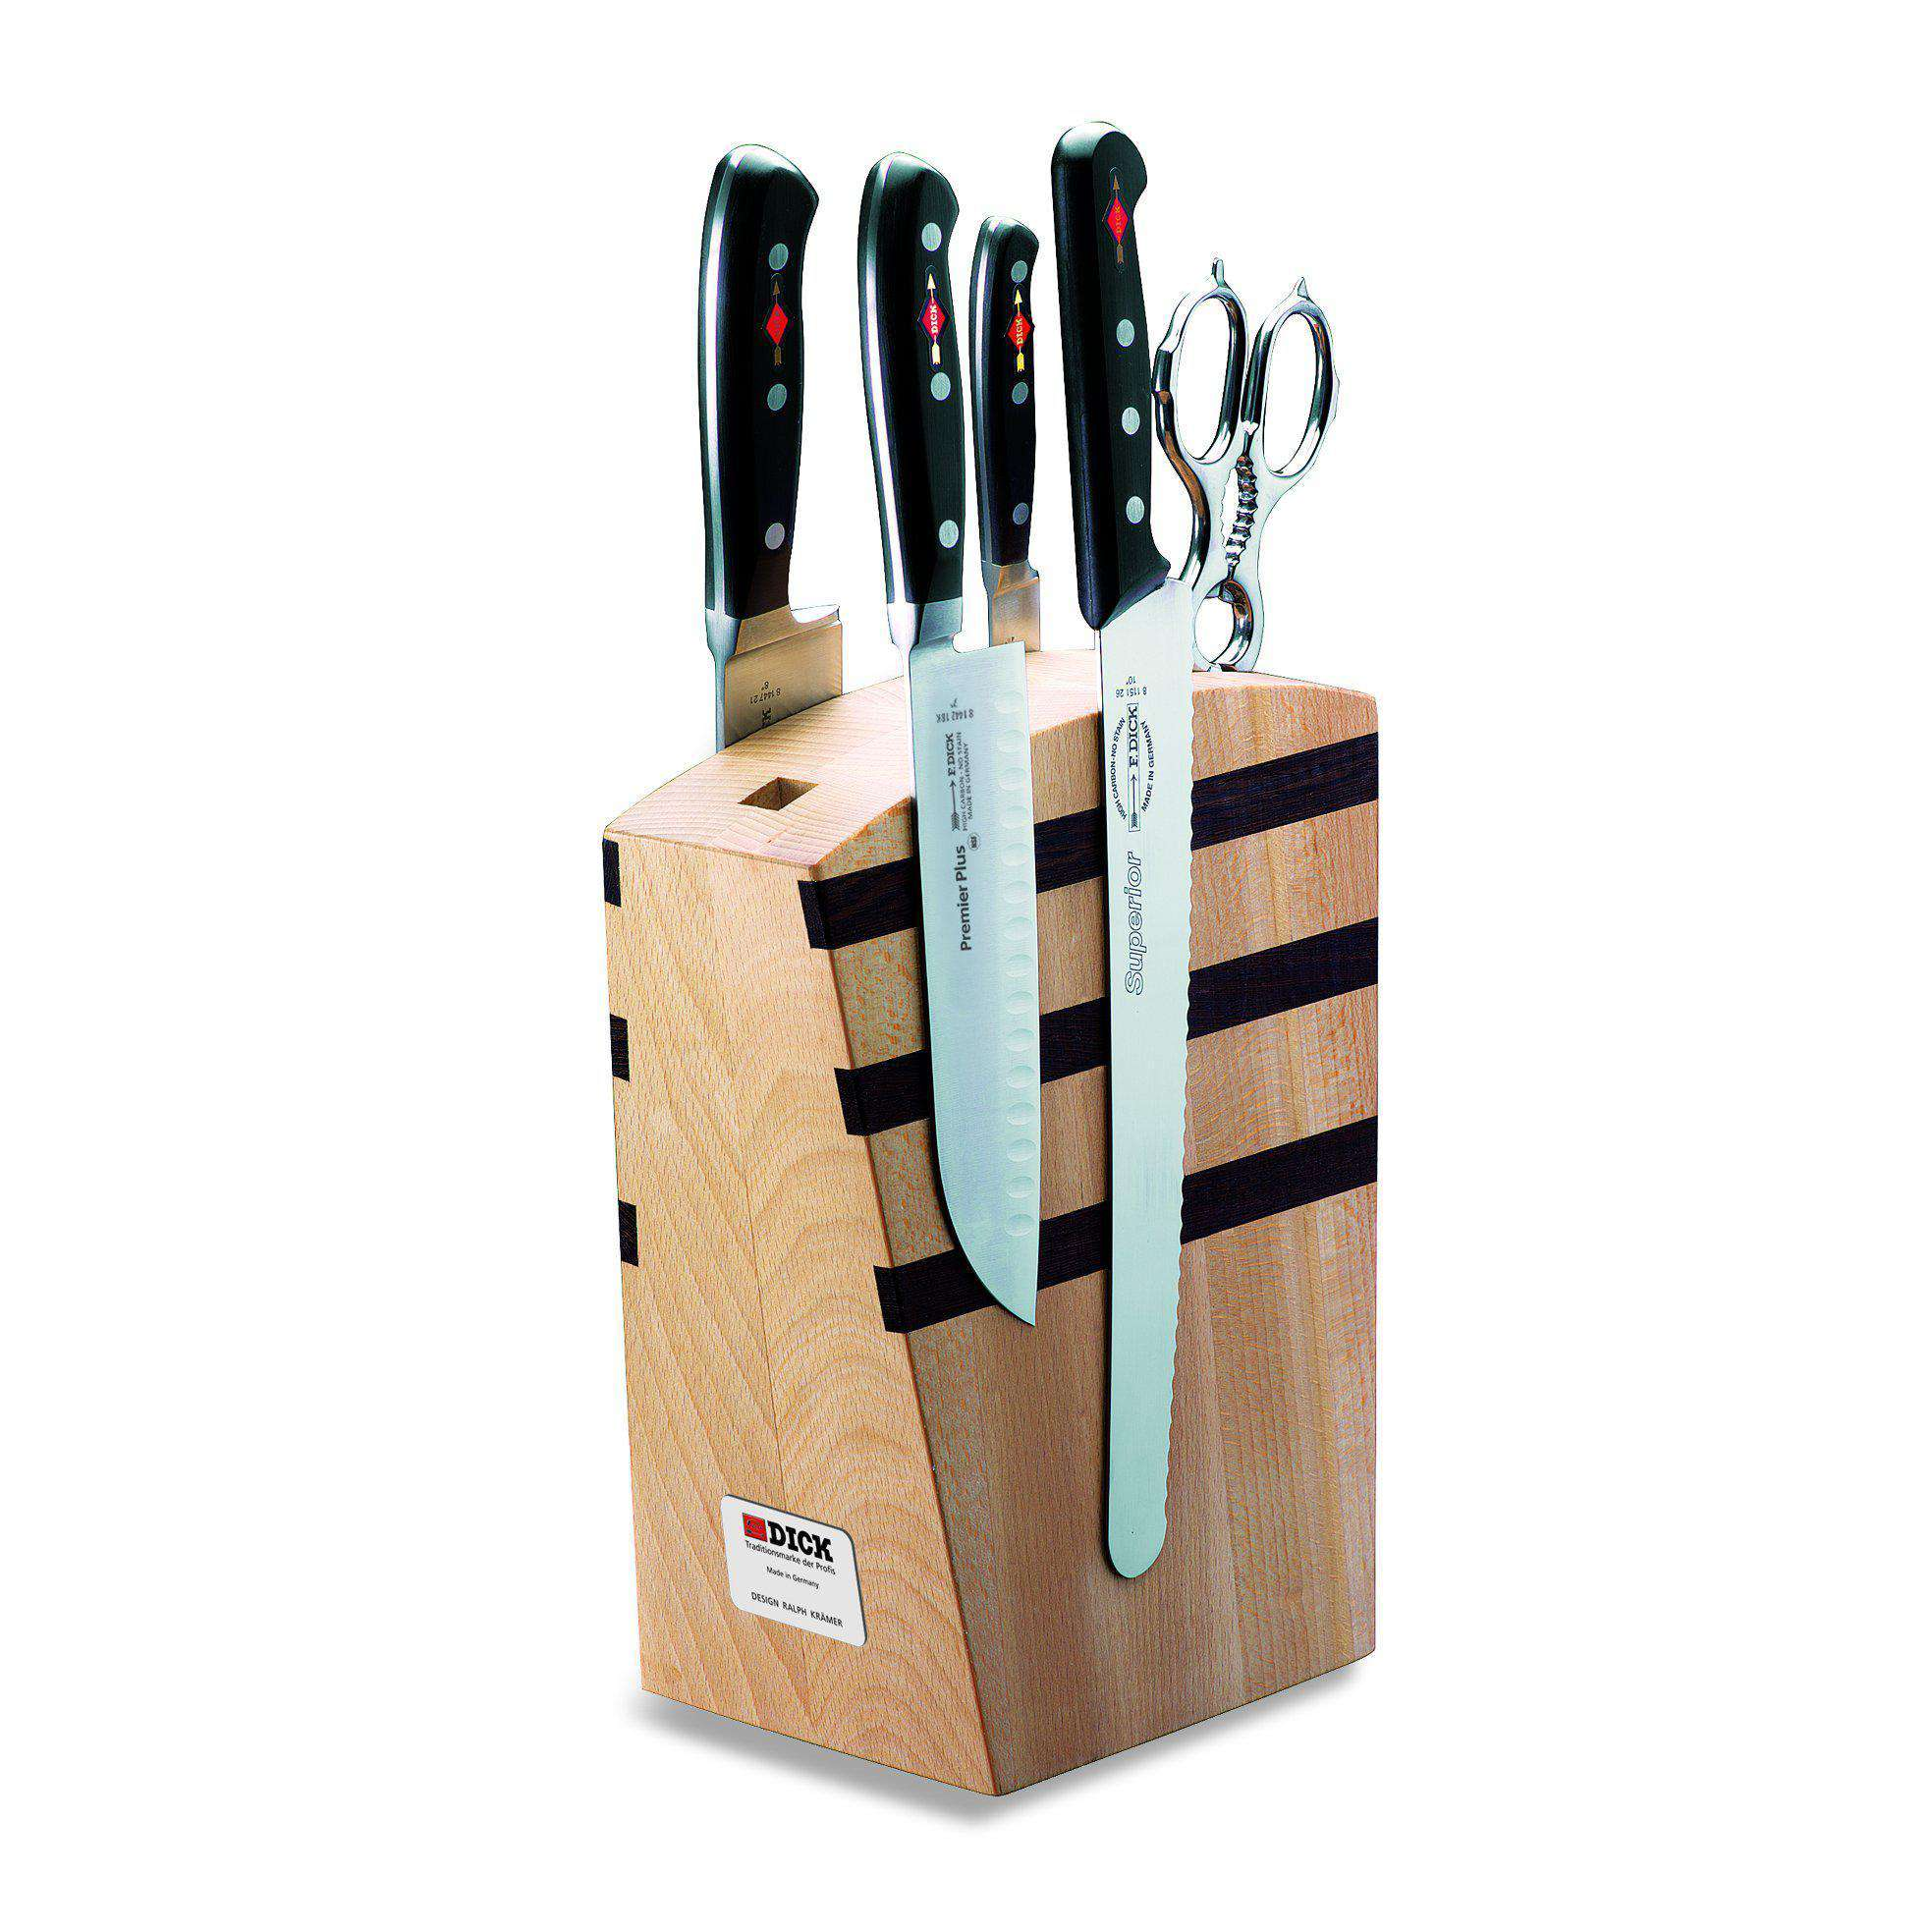 F. Dick Premier Plus Magnetic Wooden Knife Block 5 Pc Set - House of Knives